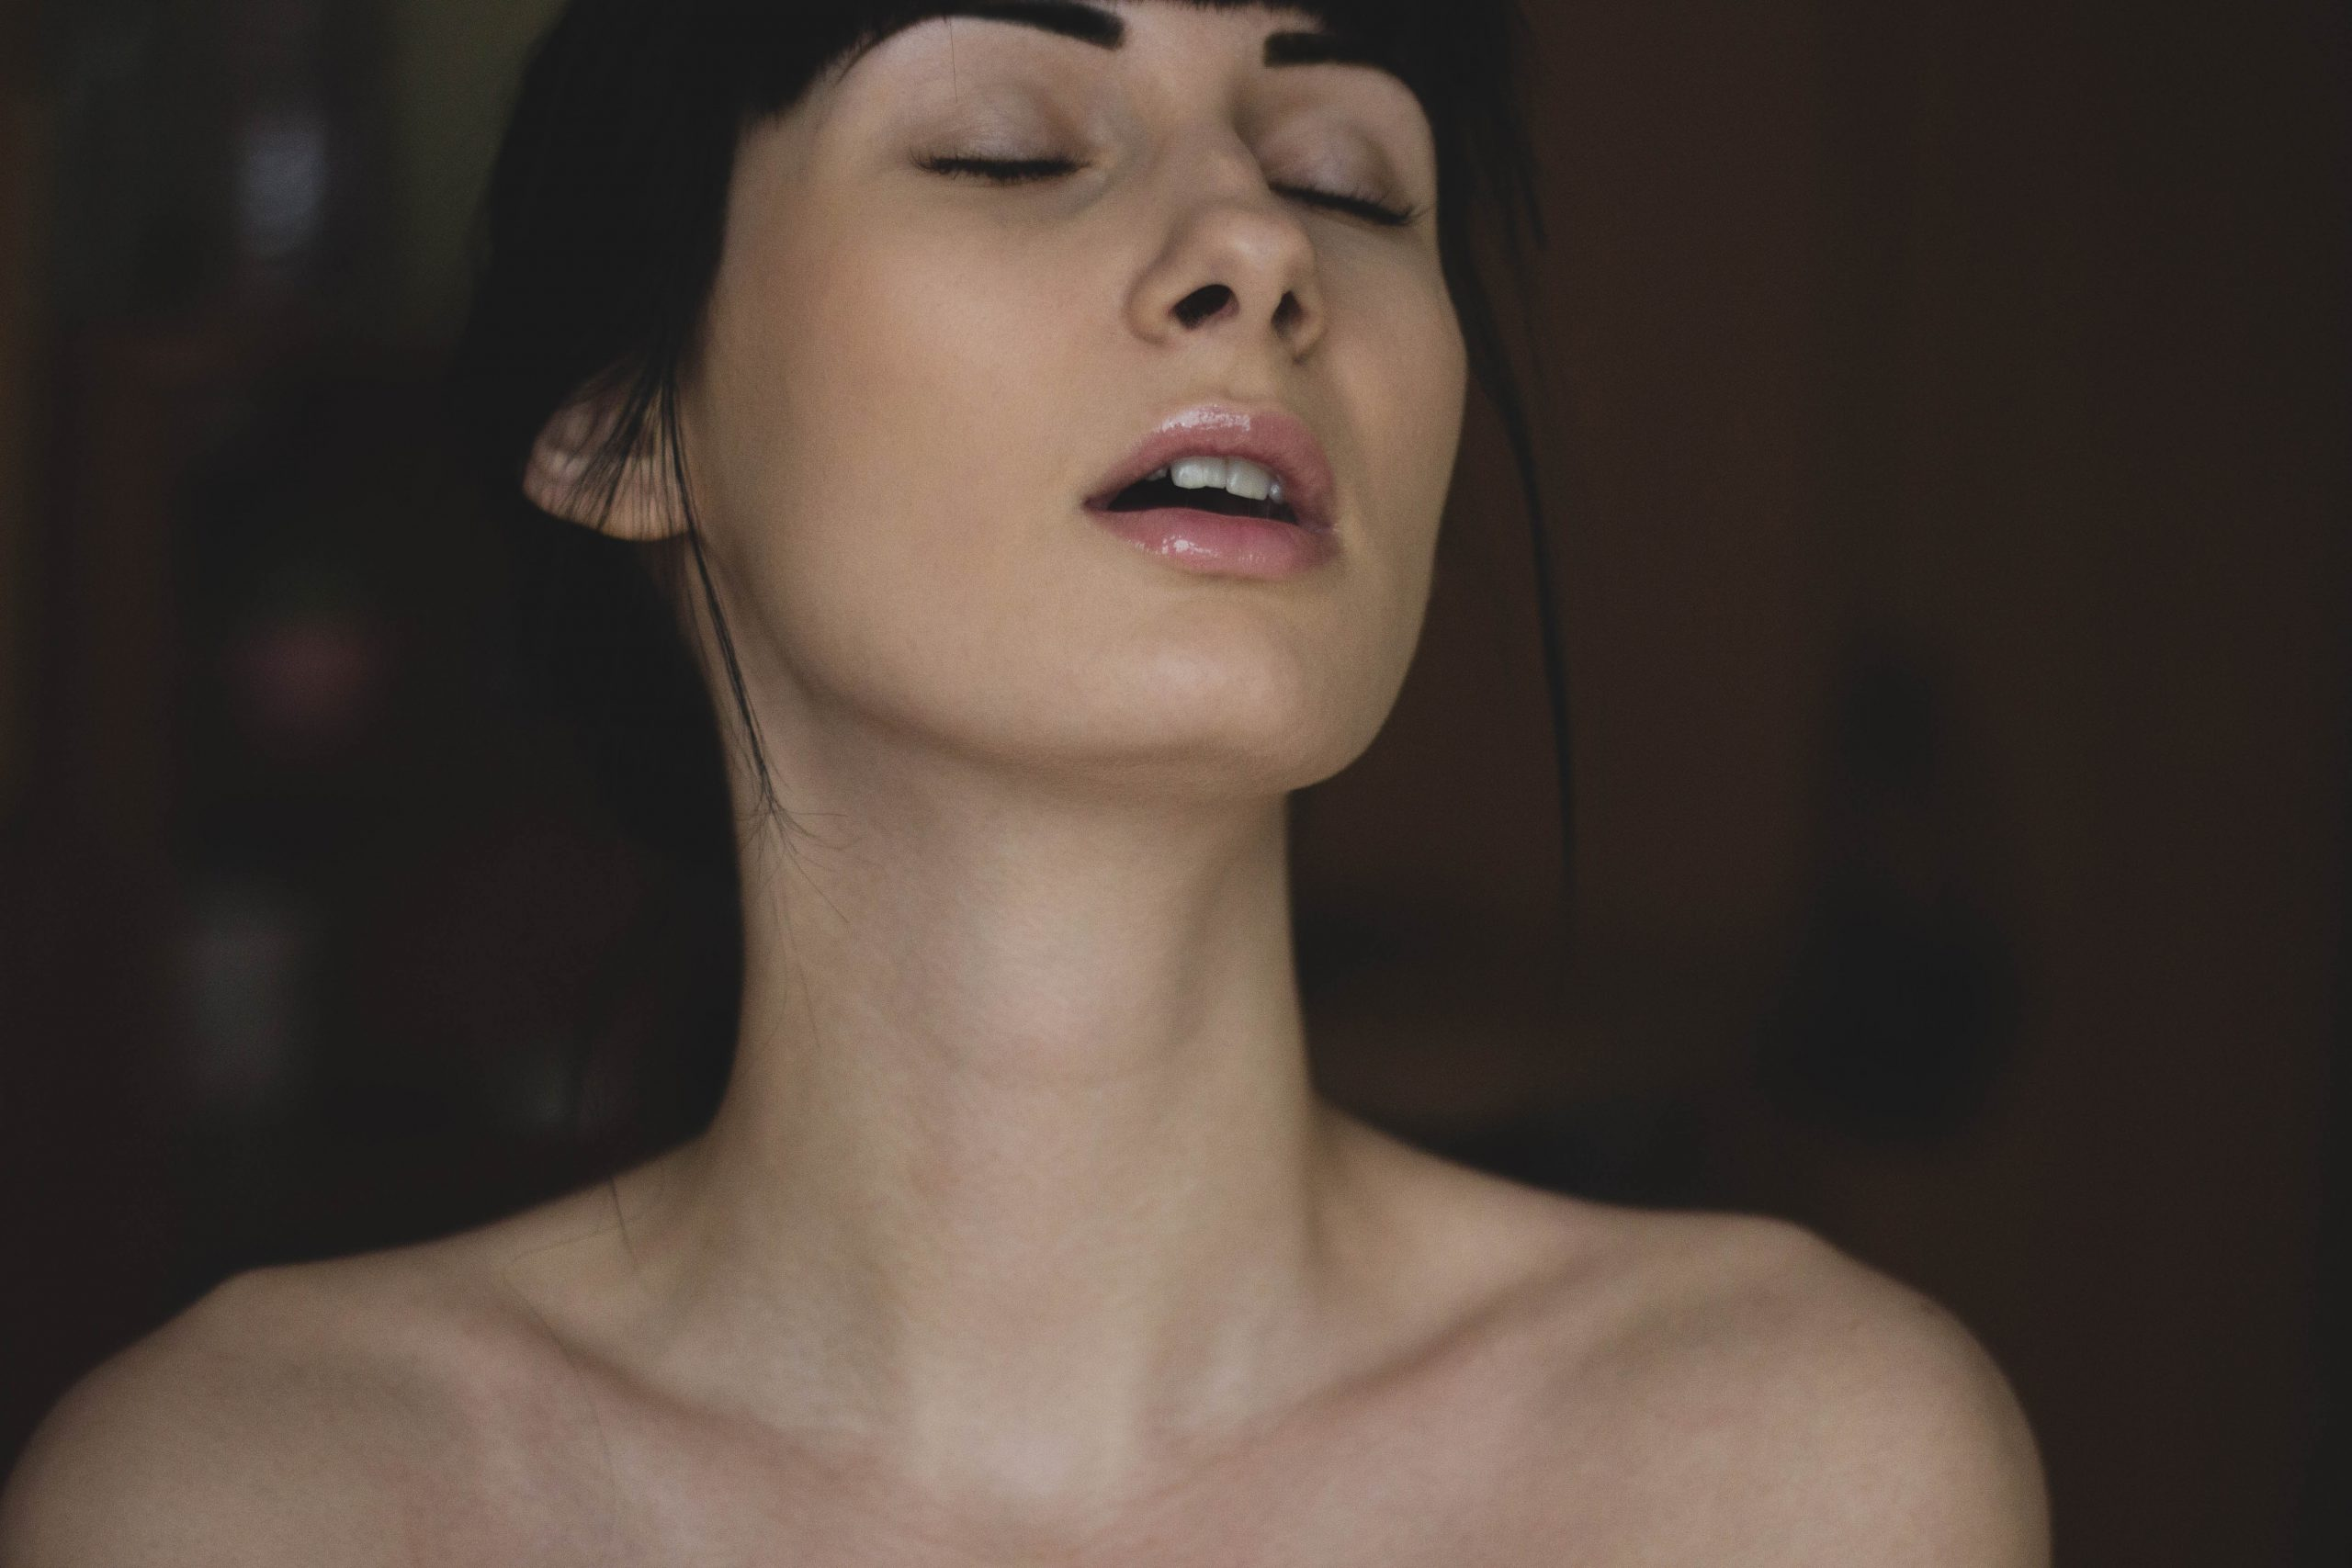 Topless woman closing her eyes